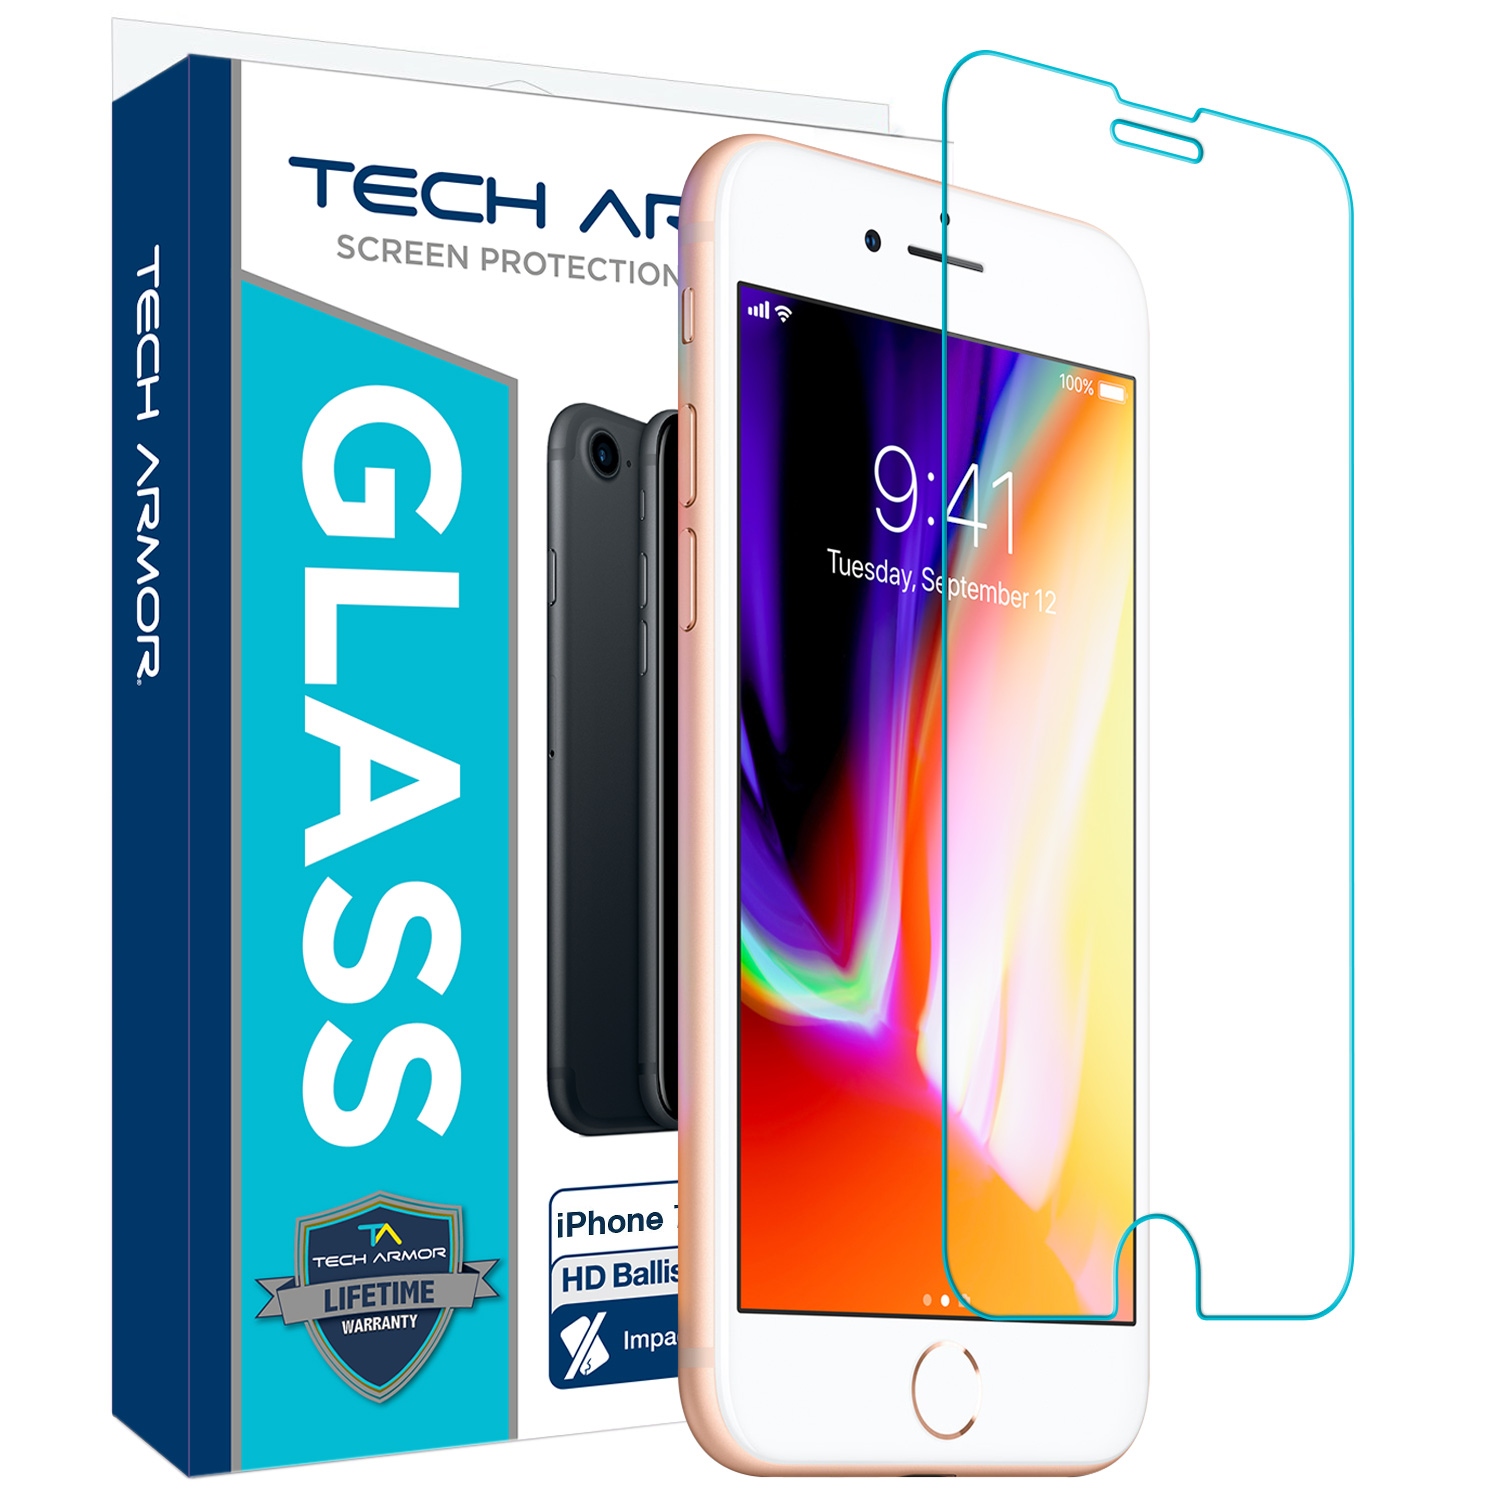 Tech Armor Apple iPhone 6 Plus, iPhone 7 Plus, iPhone 8 Plus Ballistic Glass Screen Protector, Premium Tempered Glass for iPhone 6 Plus, 7 Plus, 8 Plus, Clear [1-Pack]